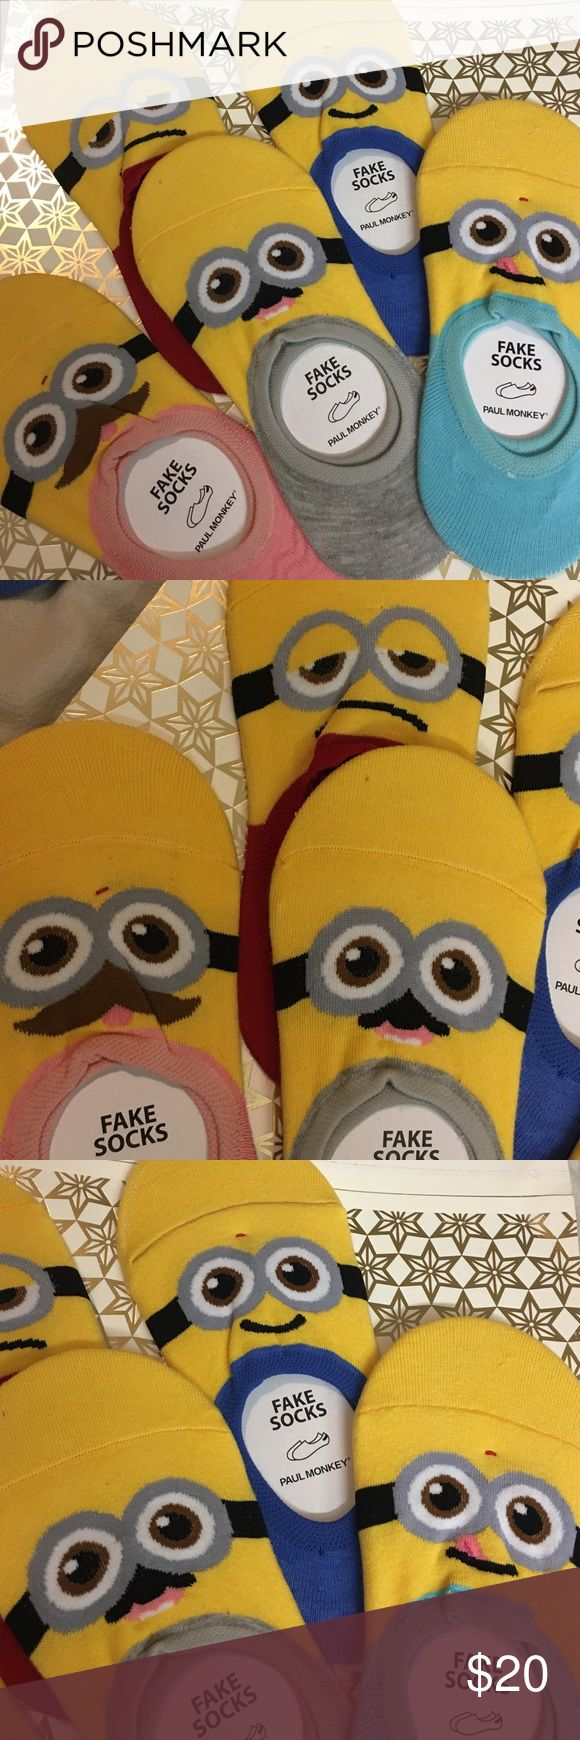 Cute minion socks😉great as stocking stuffers! 🎄 Cute minion socks😉23-25 cm one size only. price for all 5 Accessories Hosiery & Socks